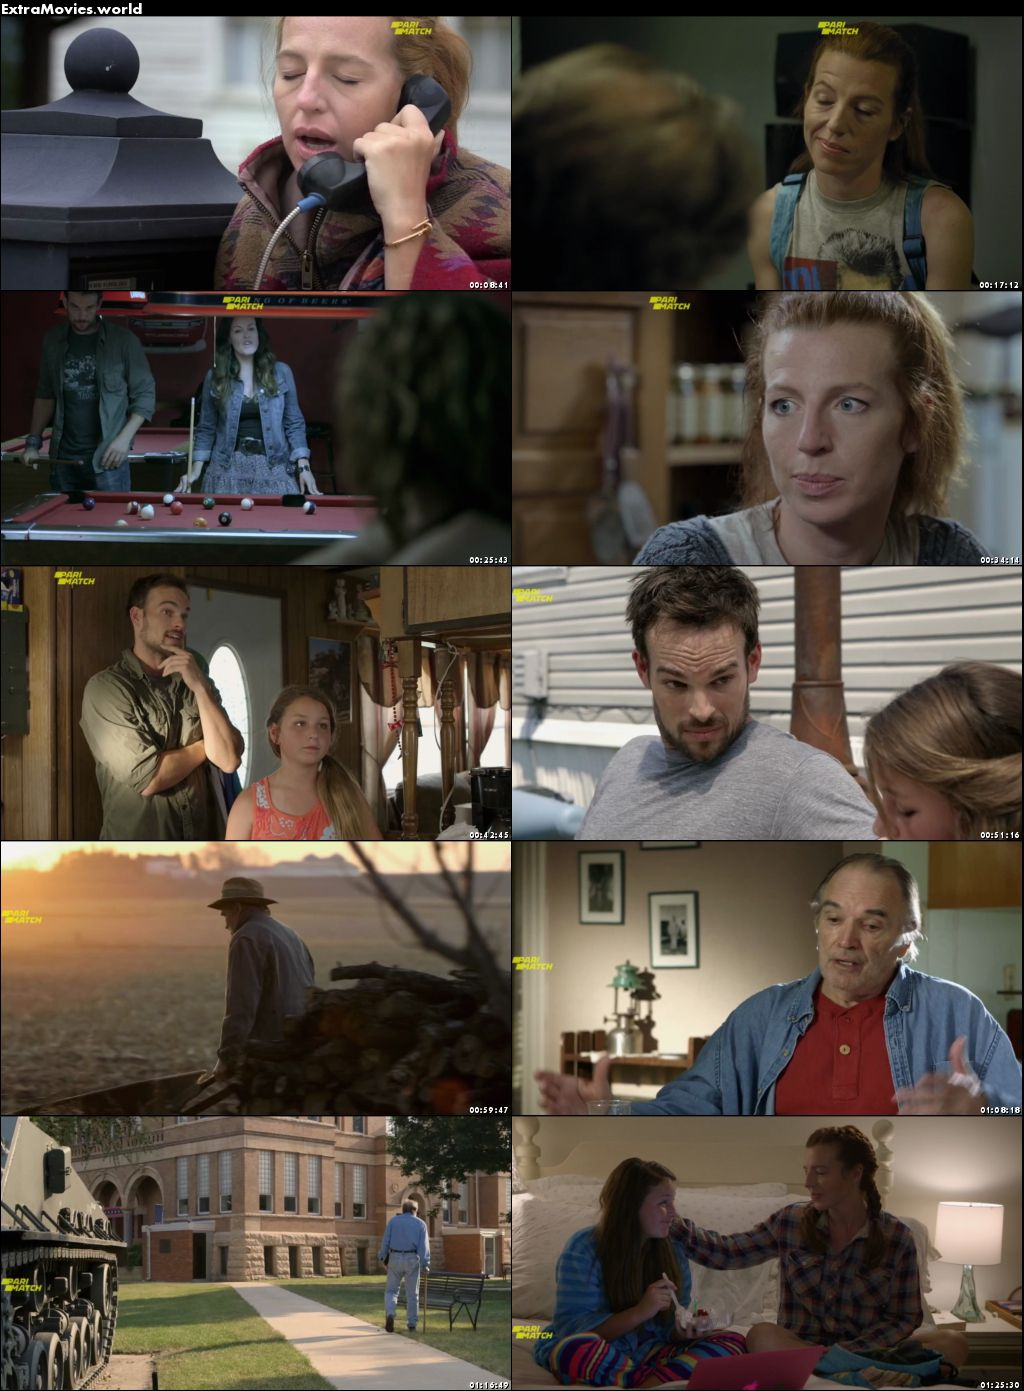 Two Ways Home 2020 Dual Audio Hindi [Unofficial Dubbed] 720p HDRip